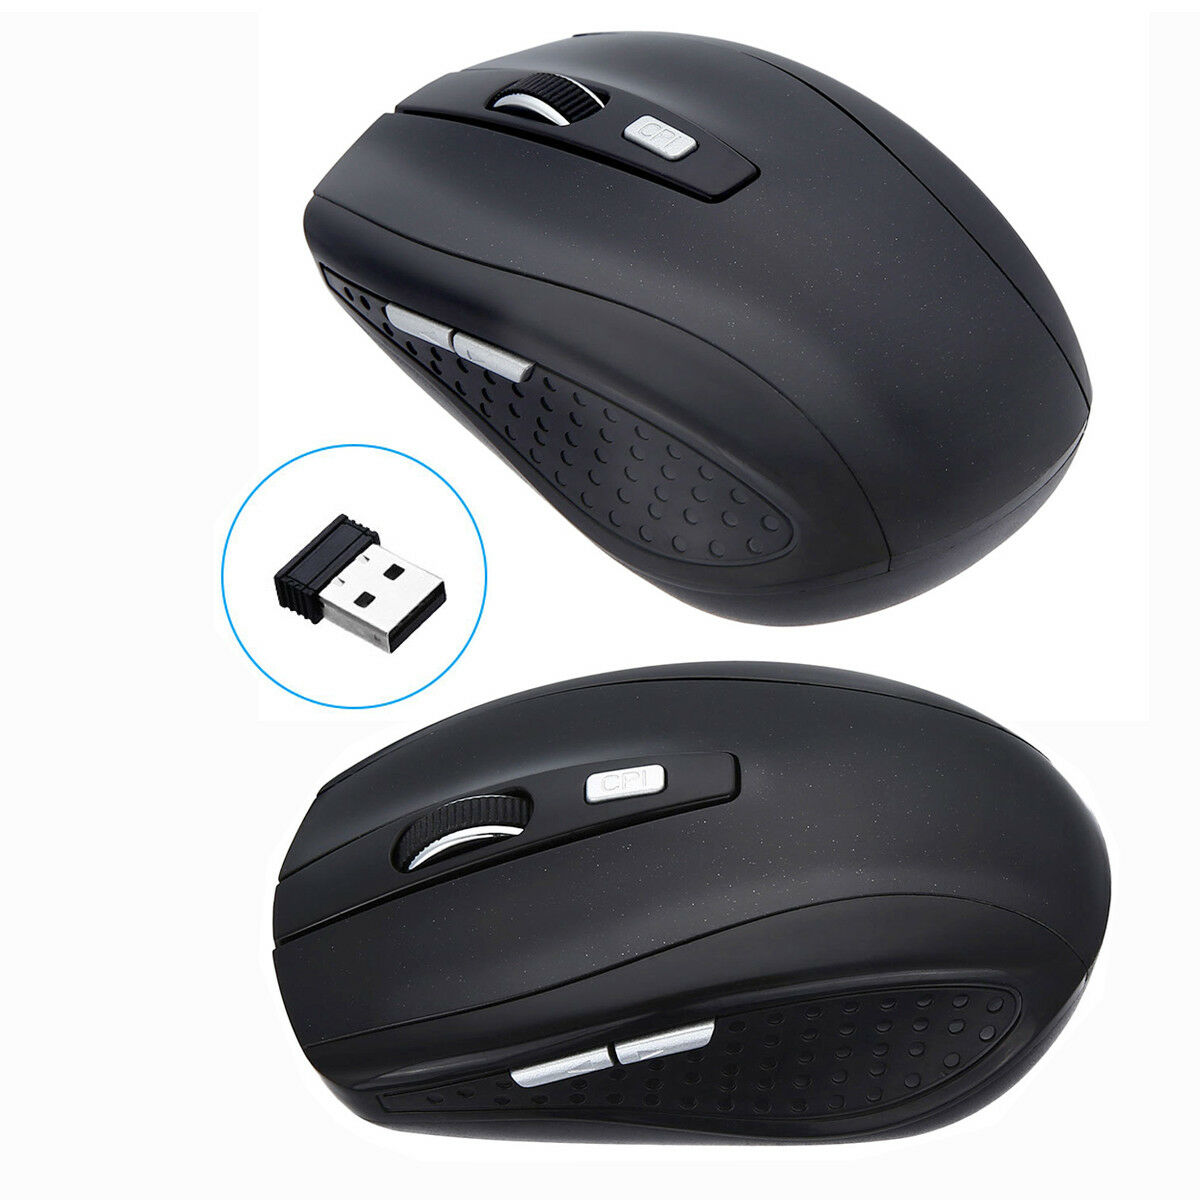 2.4GHz Wireless Cordless Optical Mouse Mice + USB Receiver f